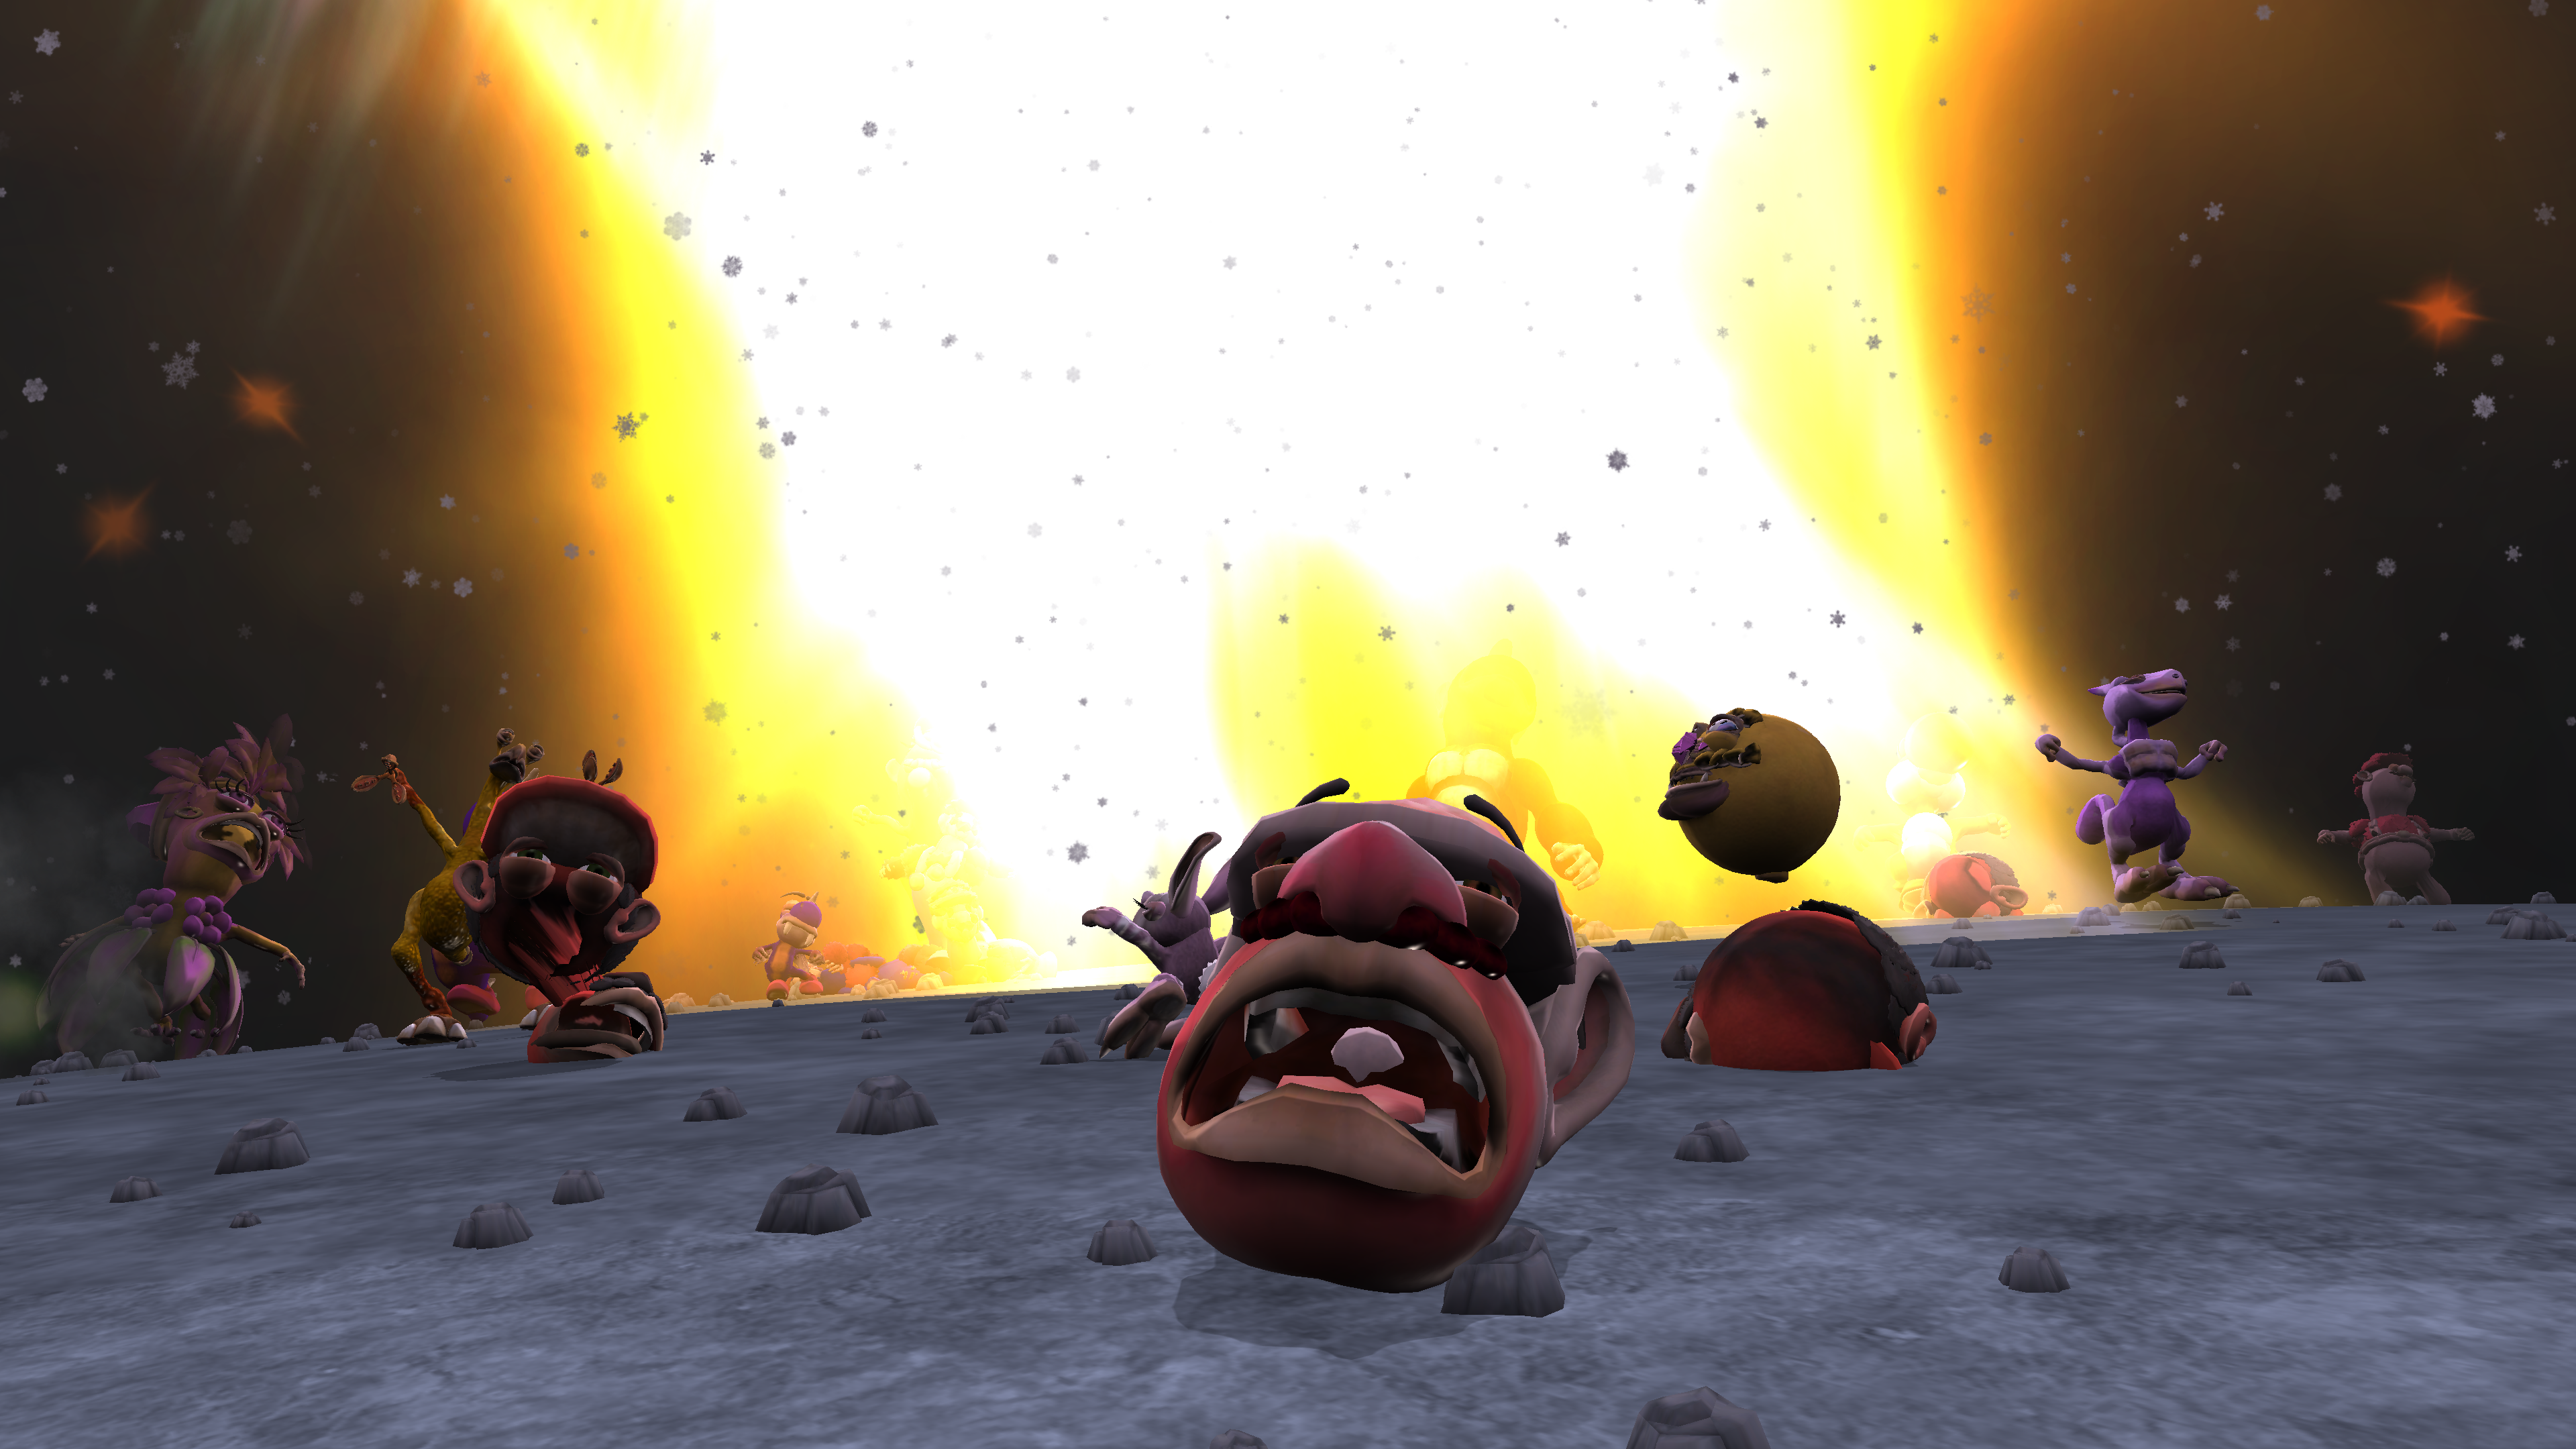 Spore_2021-08-11_13-39-53.png